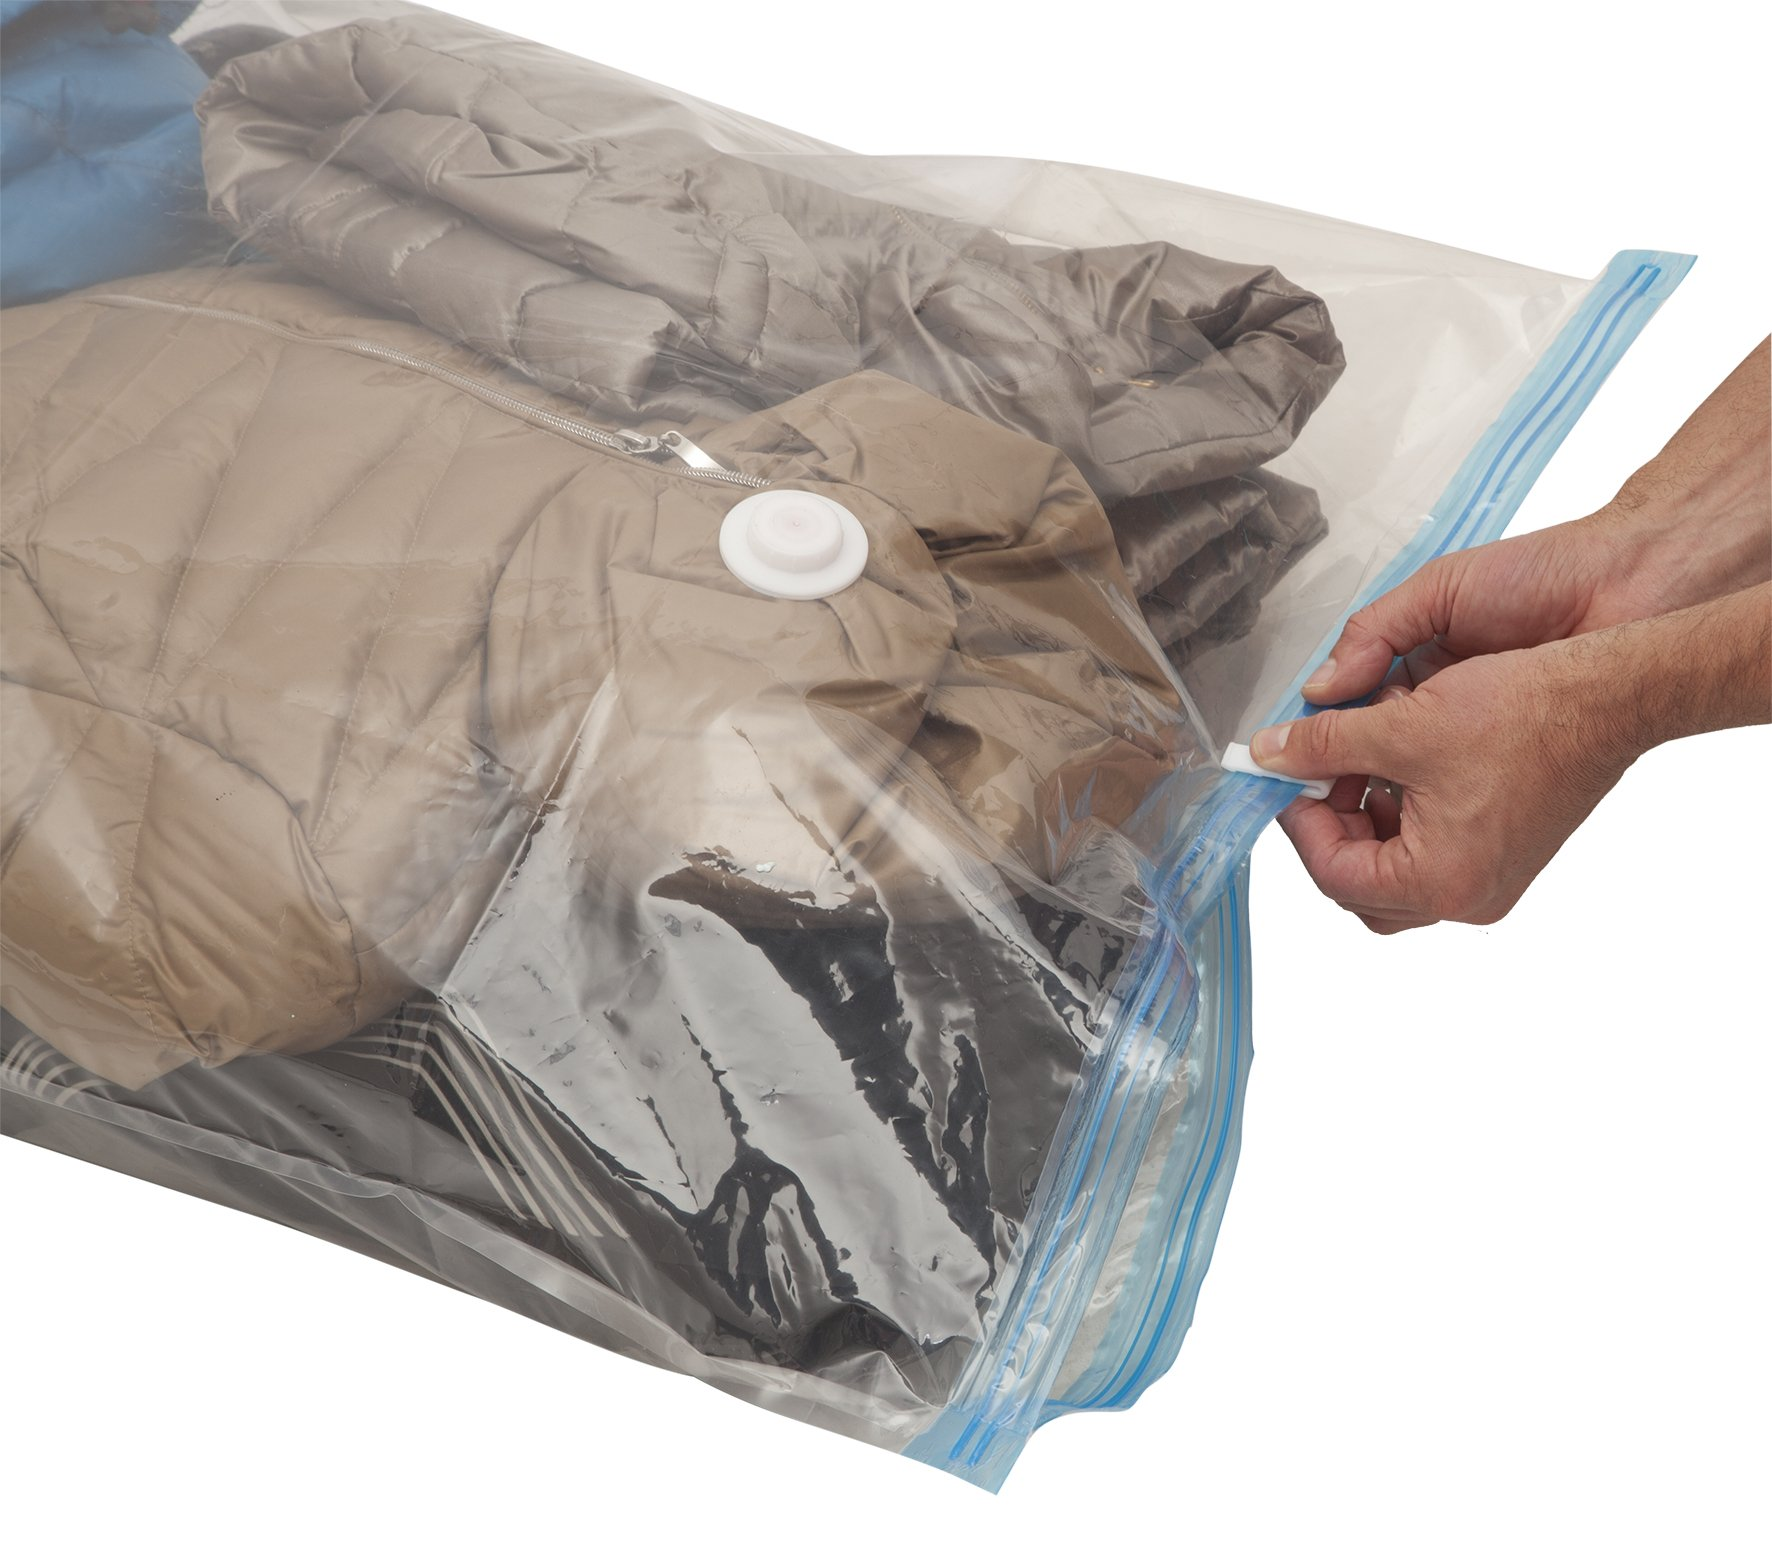 6 packs compressed reusable storage bags for clothes |MY VACUUM-BAG TO STORE | extra thick | universal size 60 x 80 cm | protects, duvets, bedding, pillows, against dampness, mildew, dust, and dirt